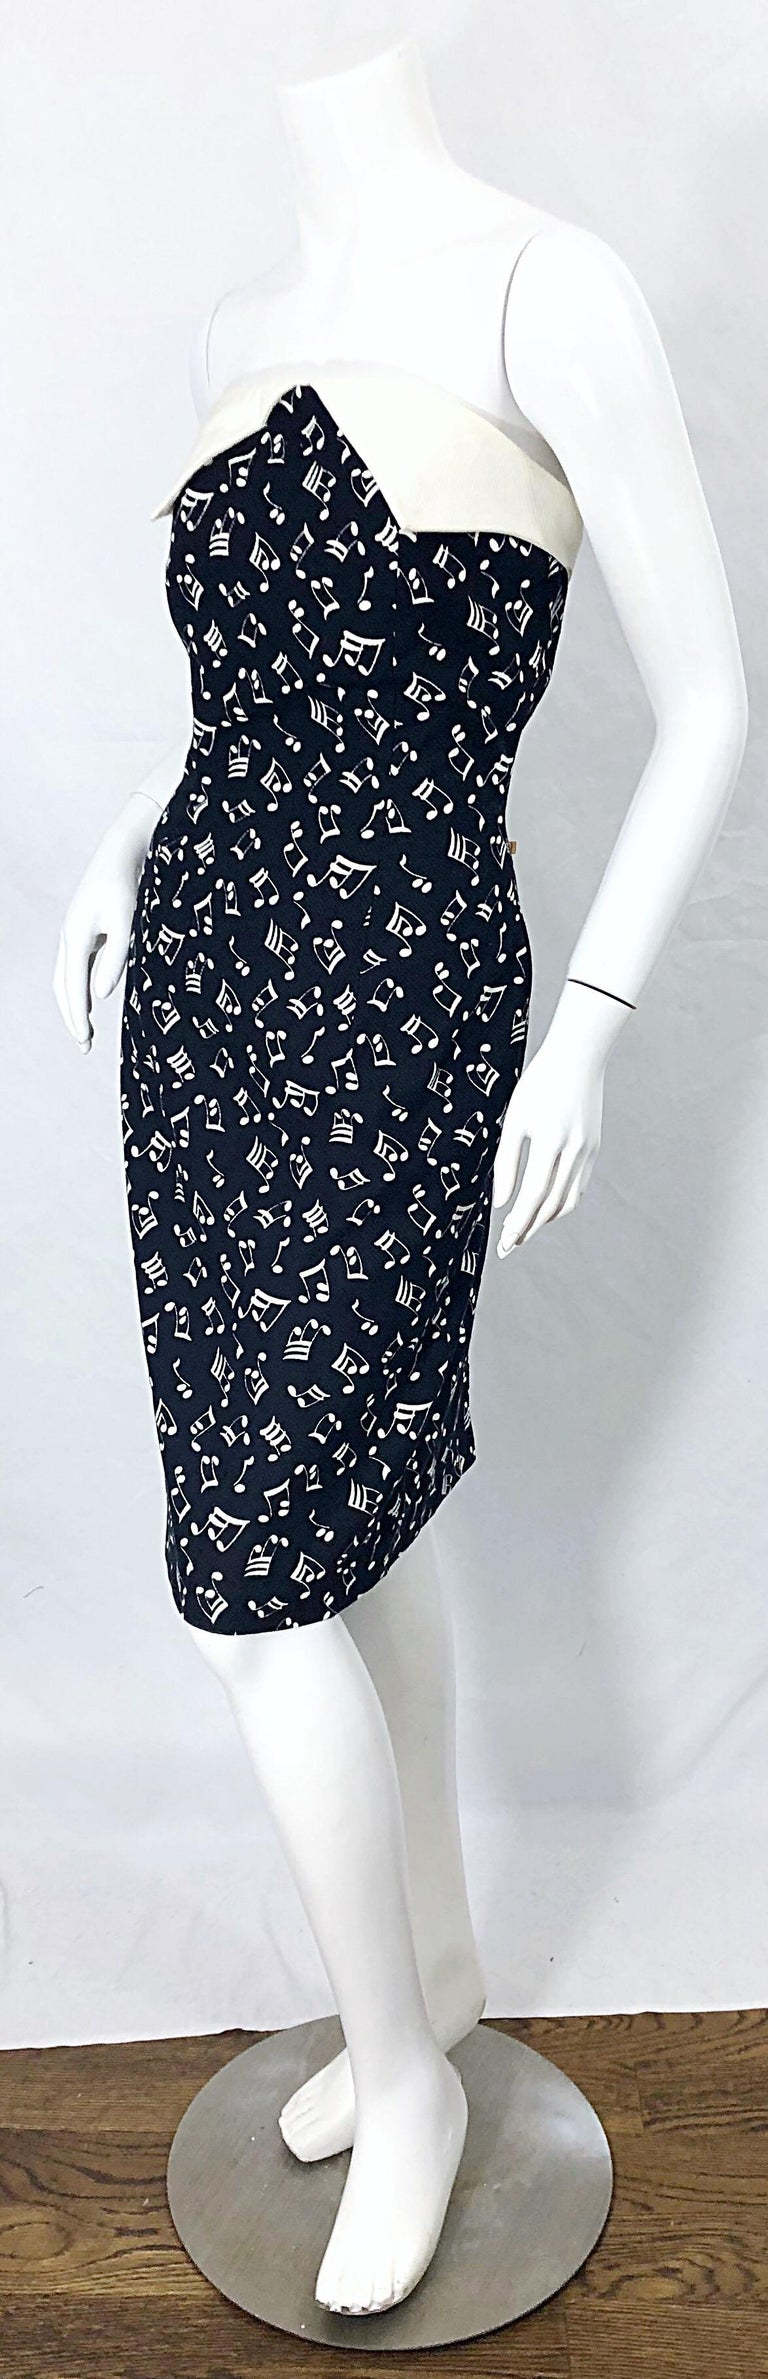 1980s Patrick Kelly Size 10 Novelty Music Print Black and White Strapless Dress For Sale 2